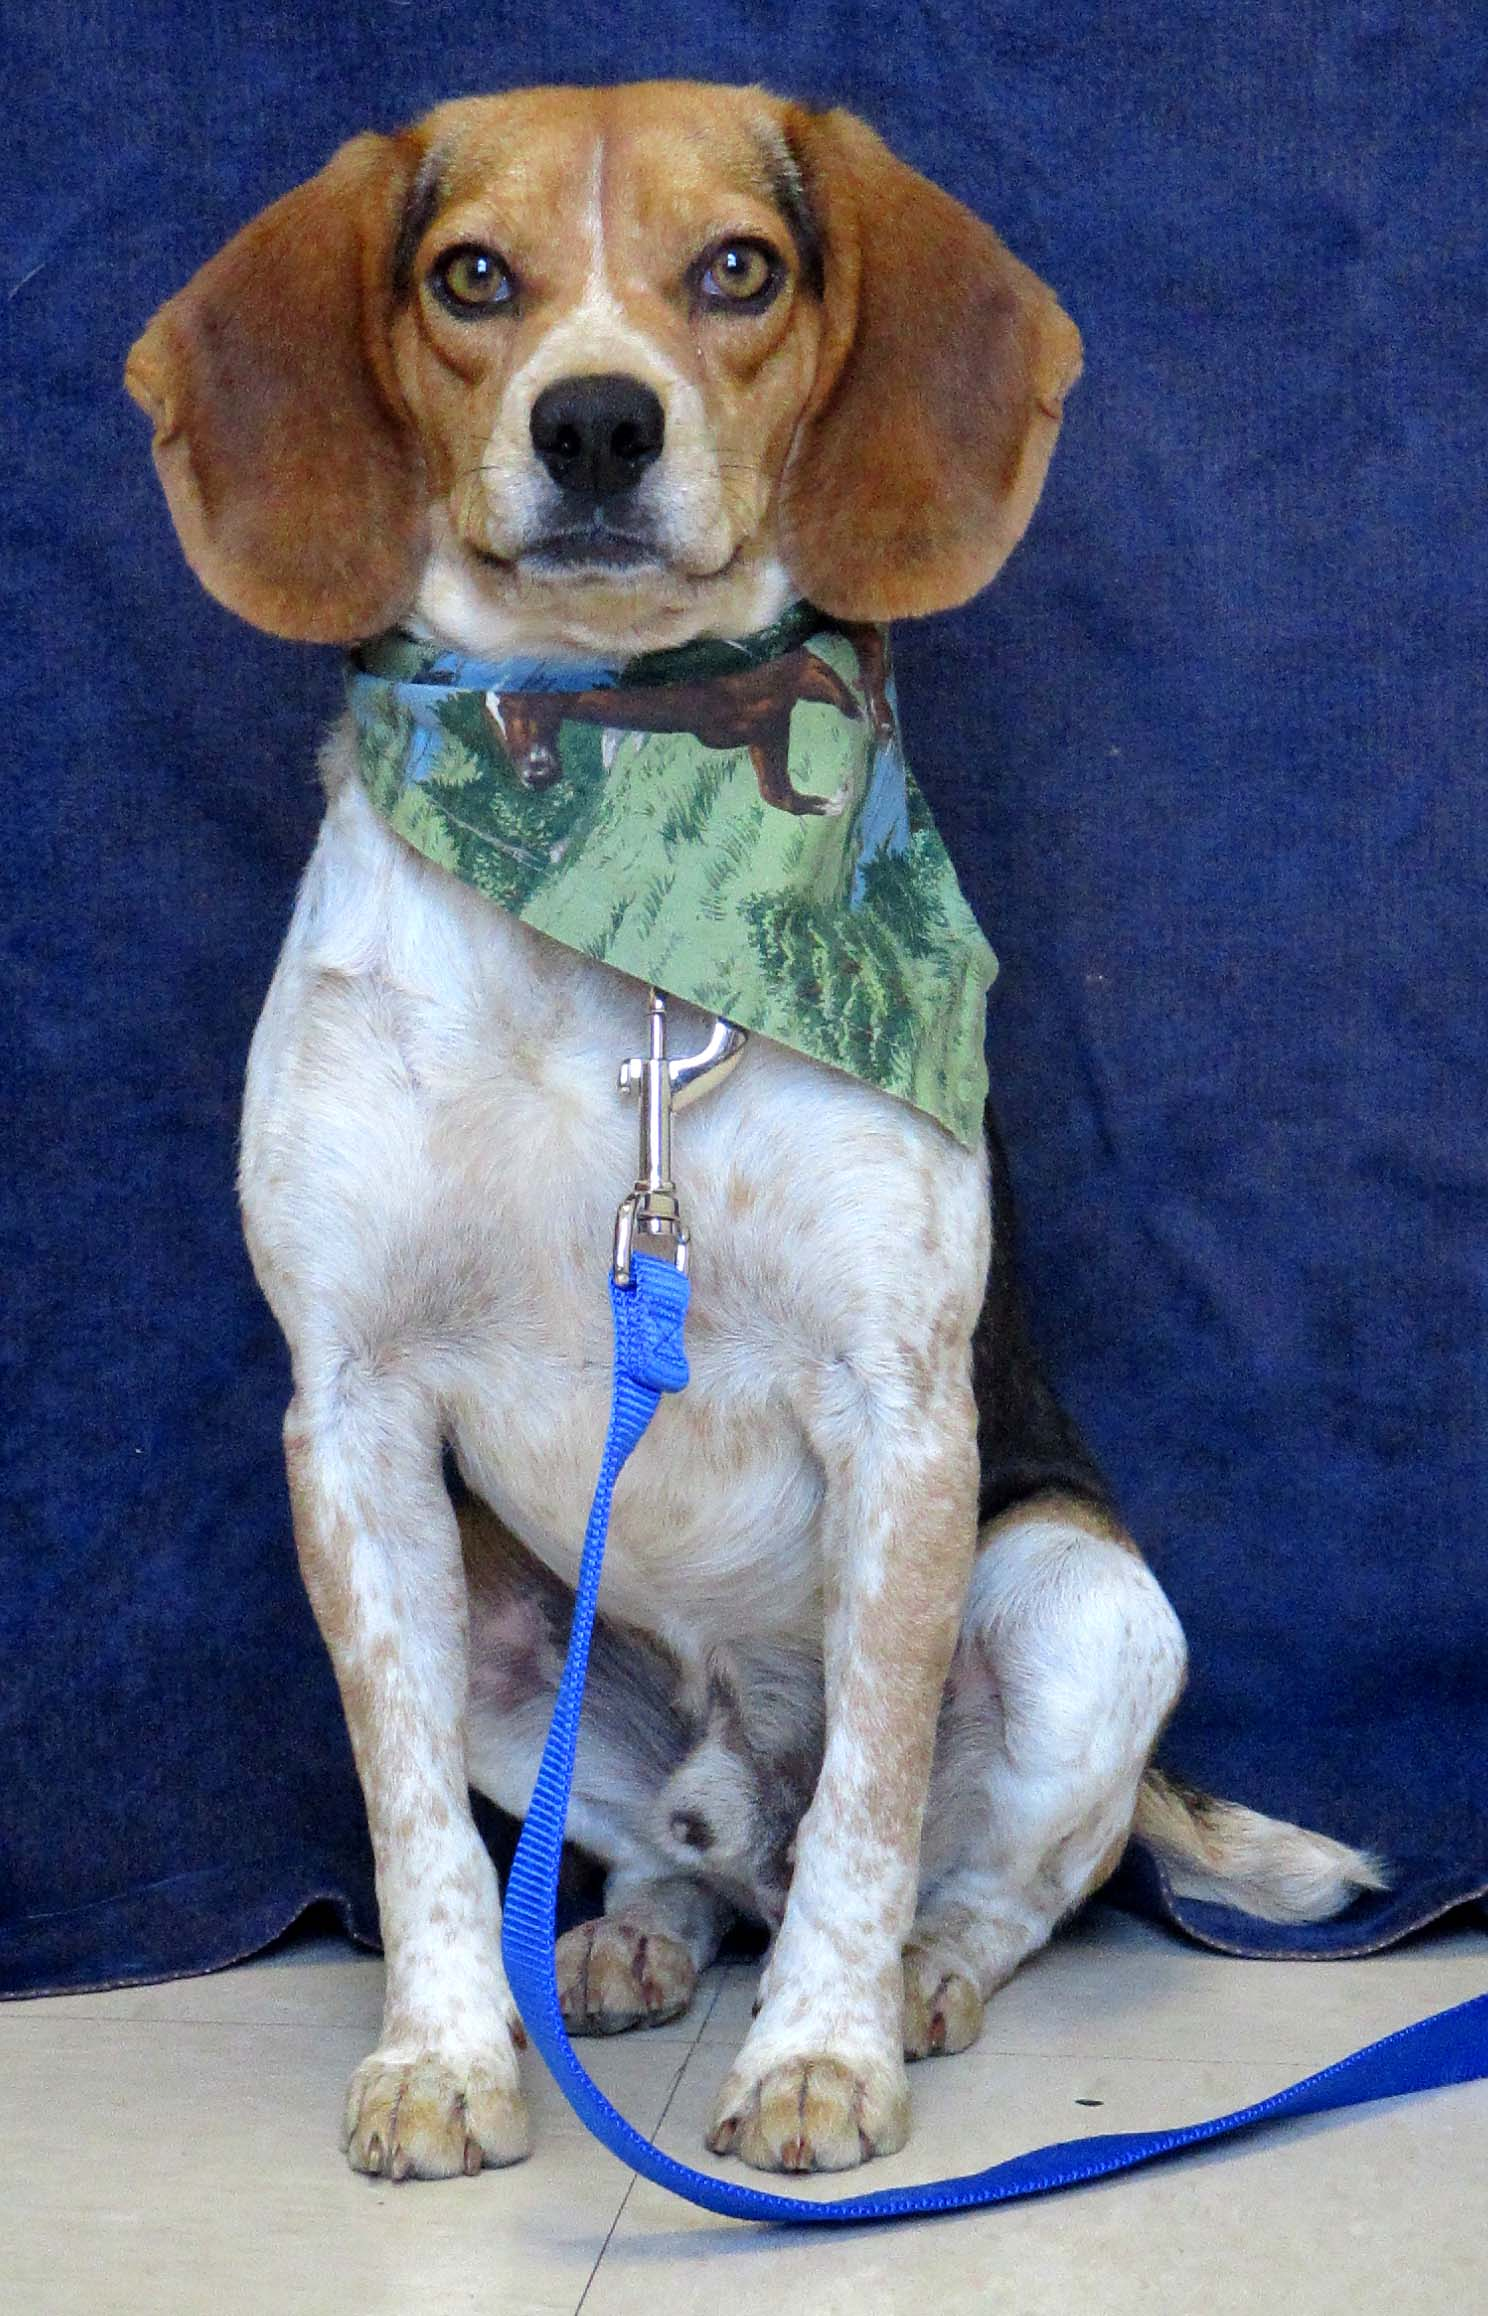 This is Buddy! He is an active 3 year old. When he initially meets people he can be shy, but he does warm up quickly. Buddy plays well with dogs in the shelter, but in the home he can get too intense. If smelling was an Olympic sport he could win the gold!